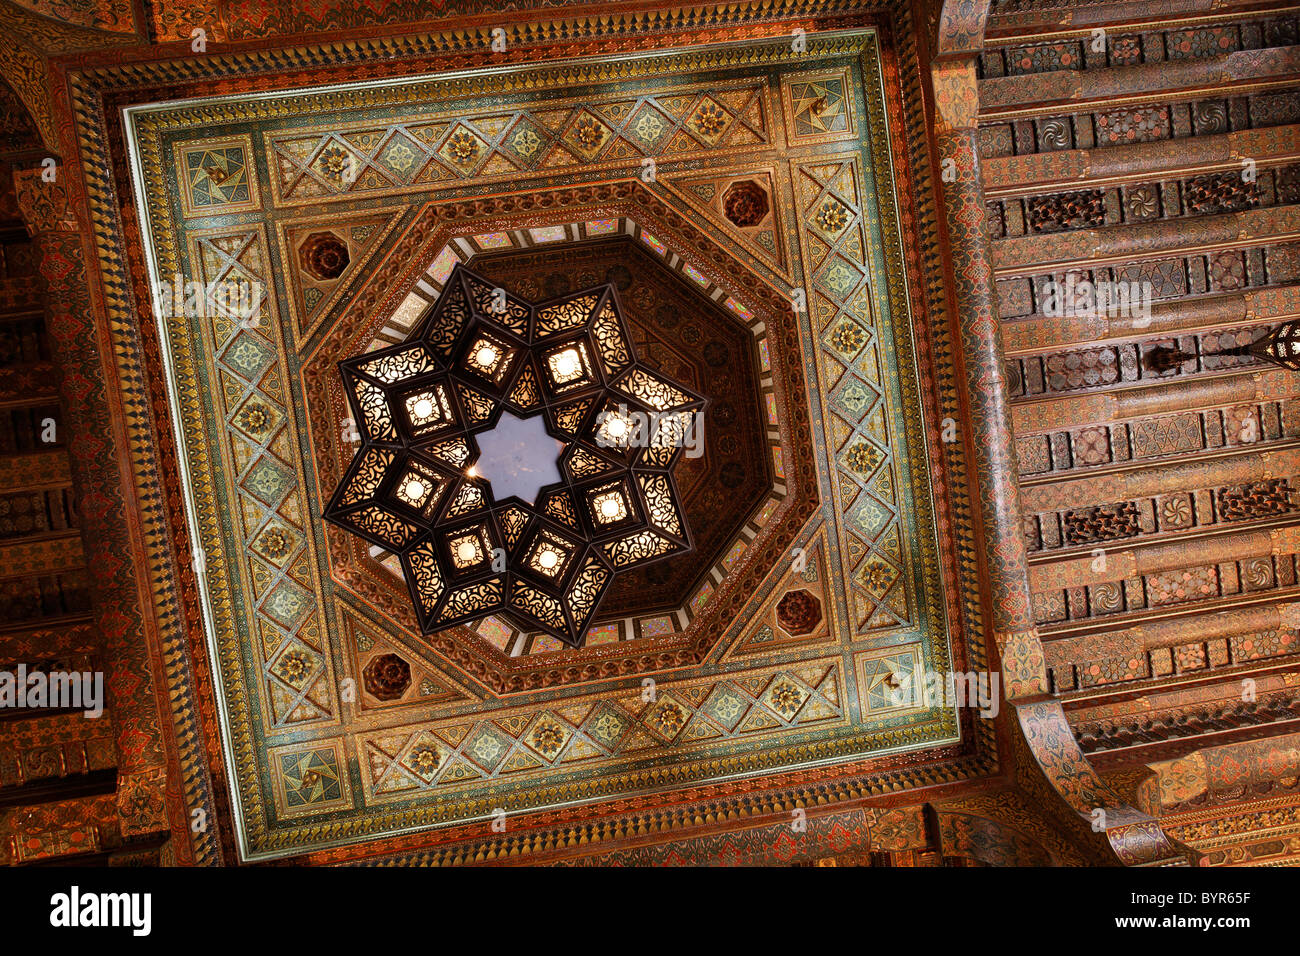 Ornate ceiling and chandelier inside the gatehouse of the Citadel of Aleppo, Syria - Stock Image